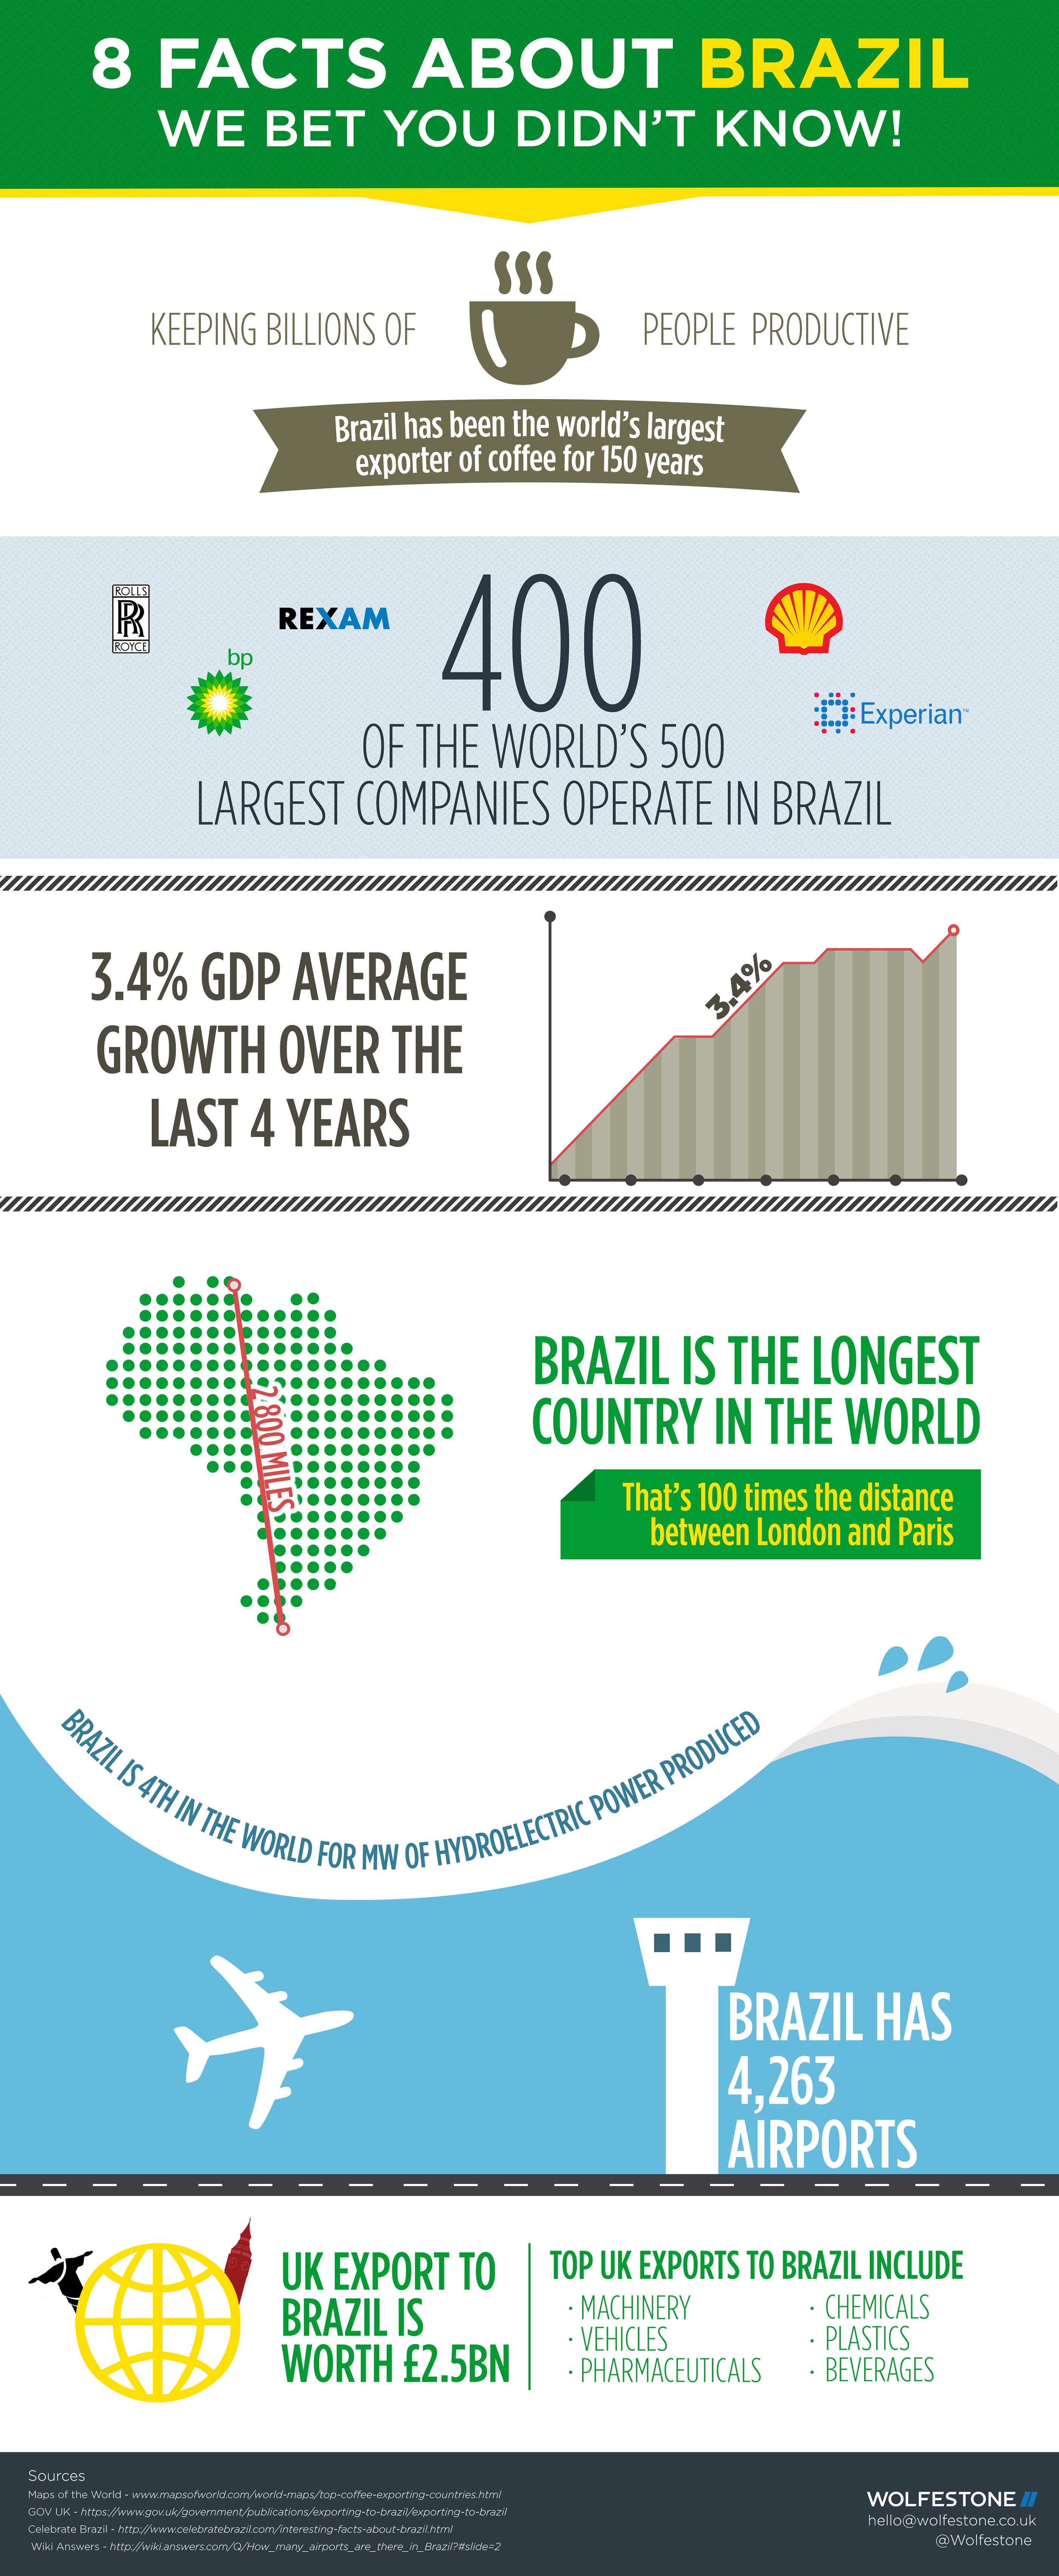 brazil-infographic-final-fortwitter